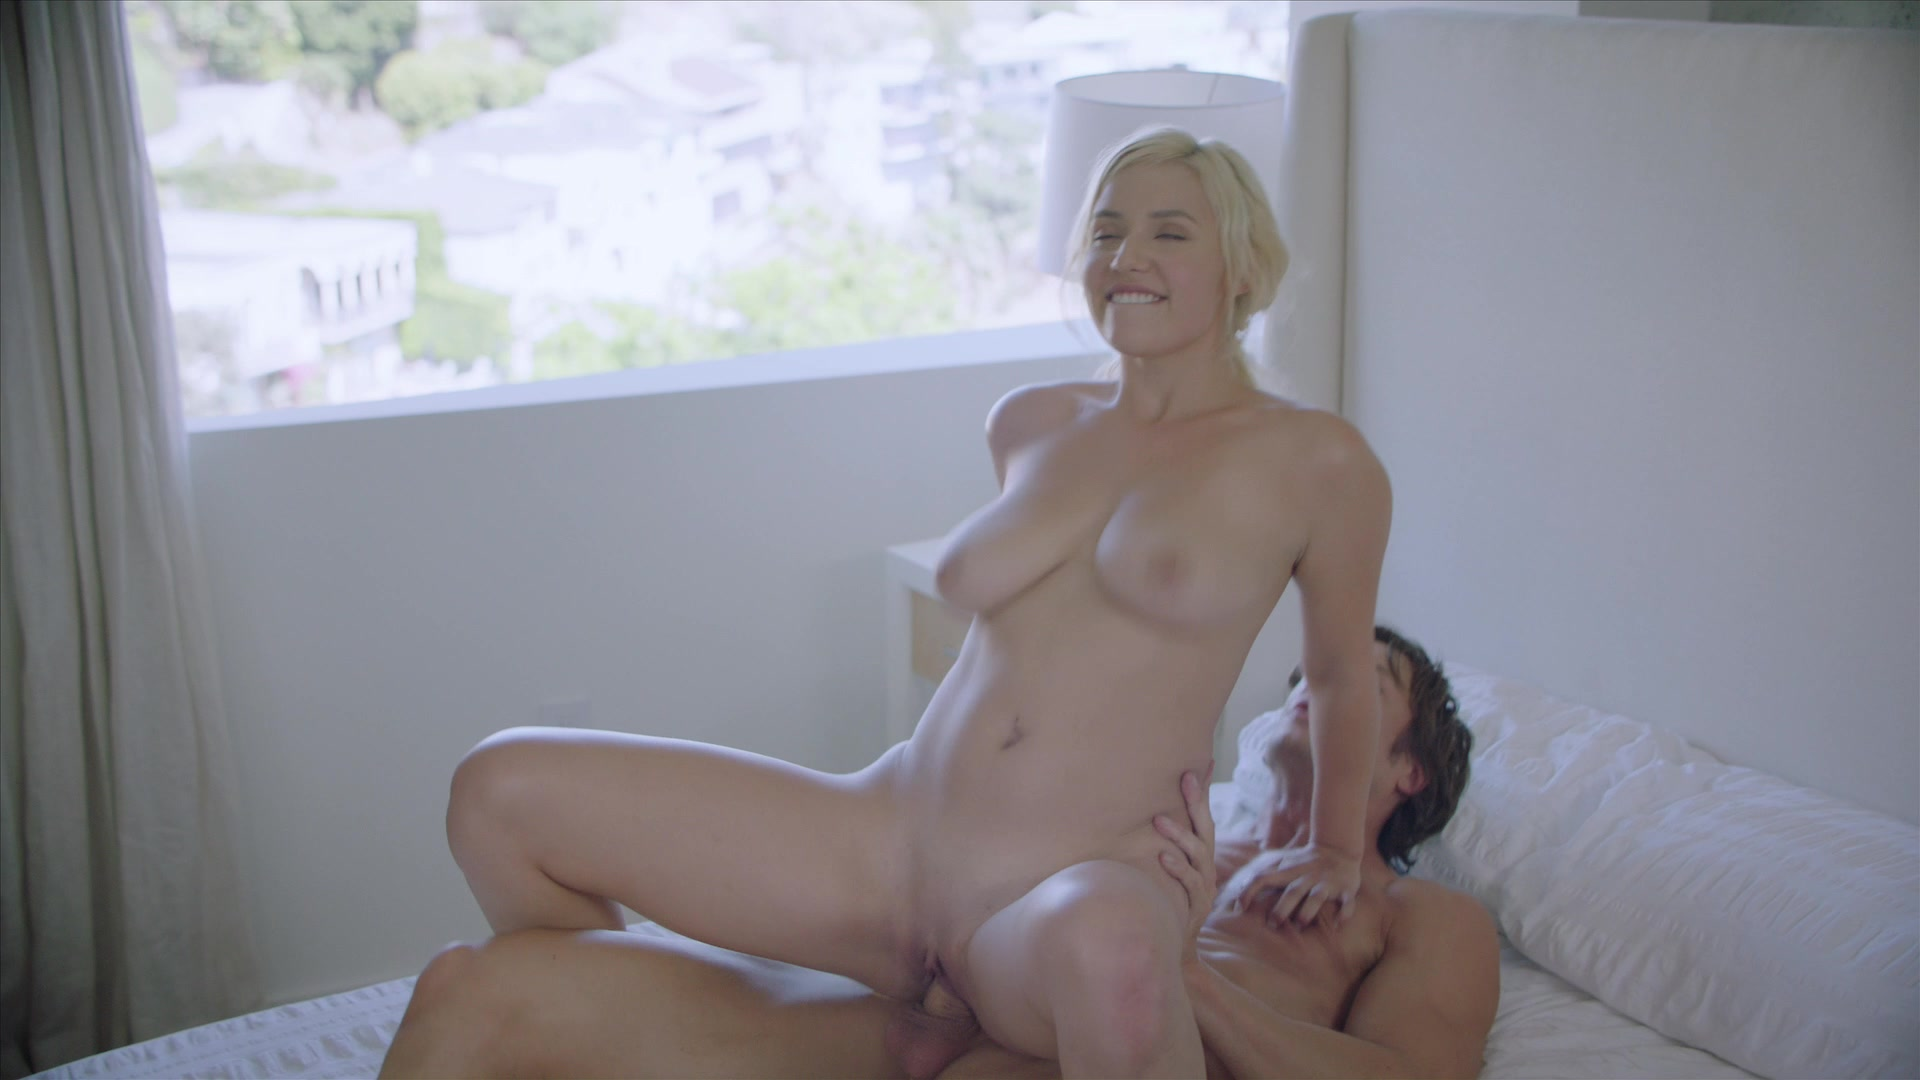 Scene with Kylie Page - image 20 out of 20